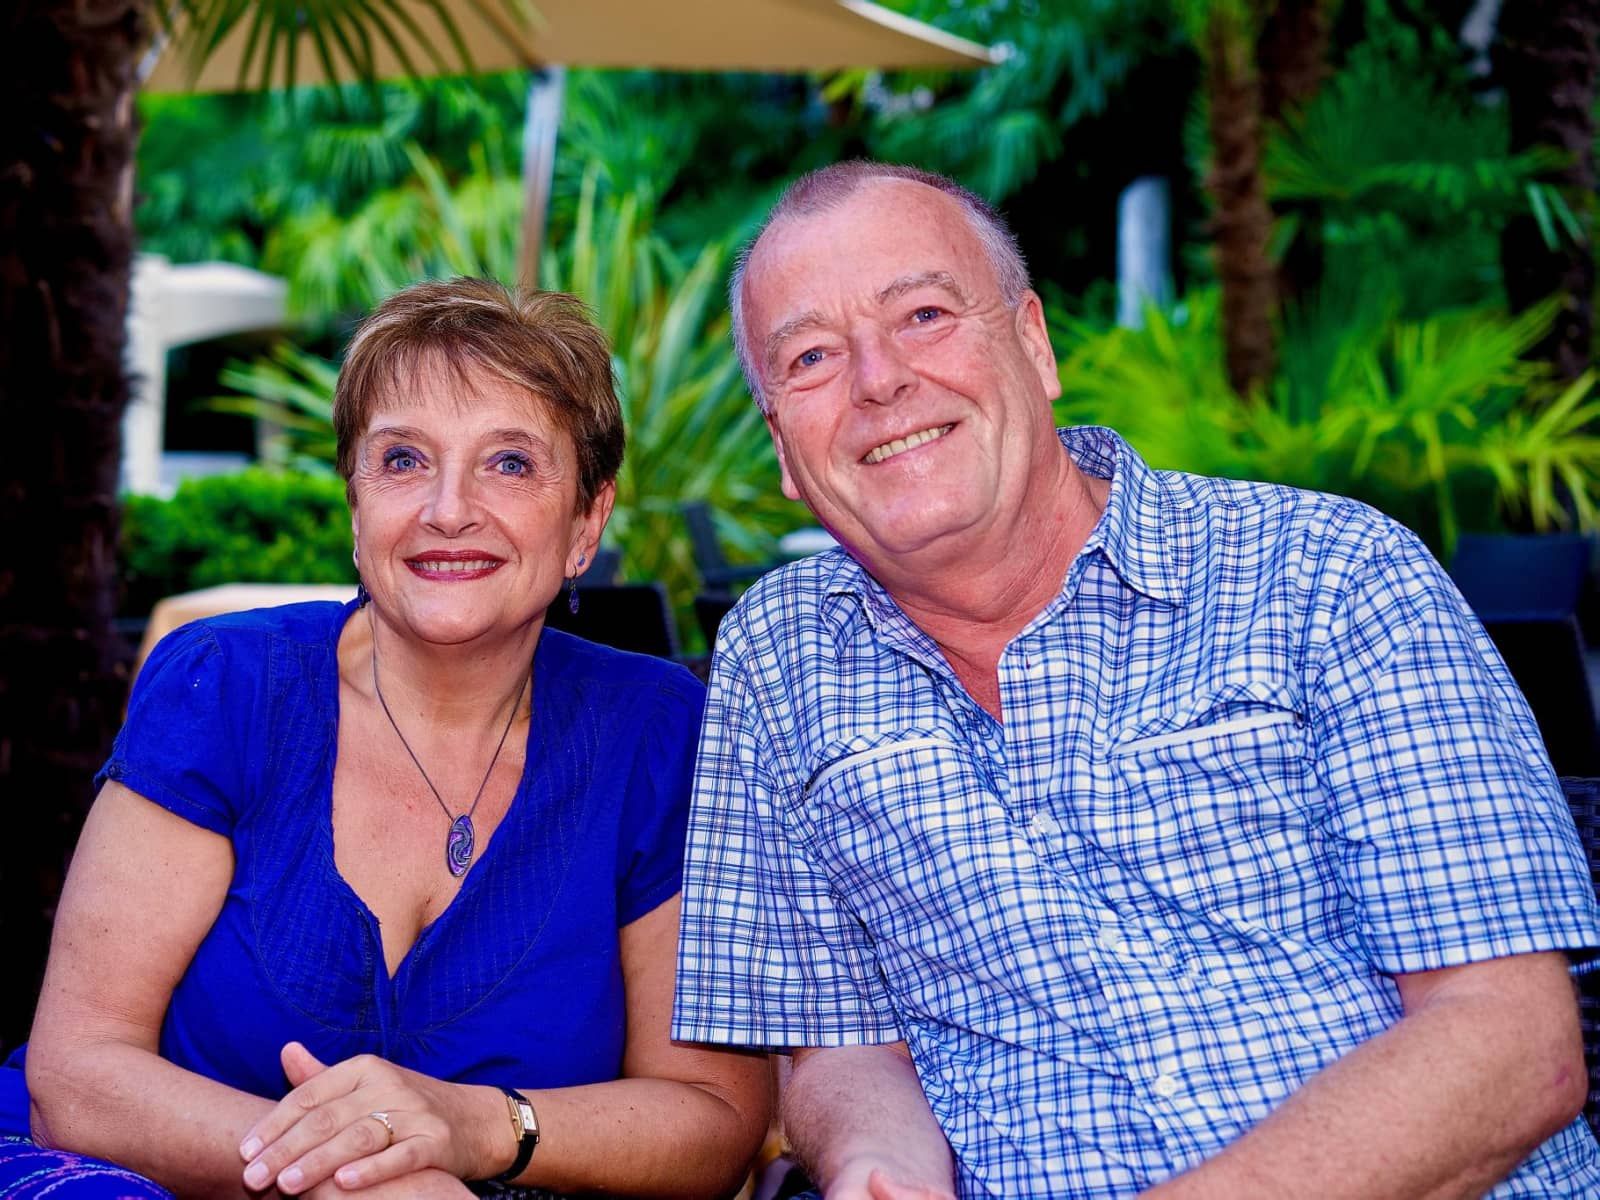 Alan & Christine from Dorking, United Kingdom